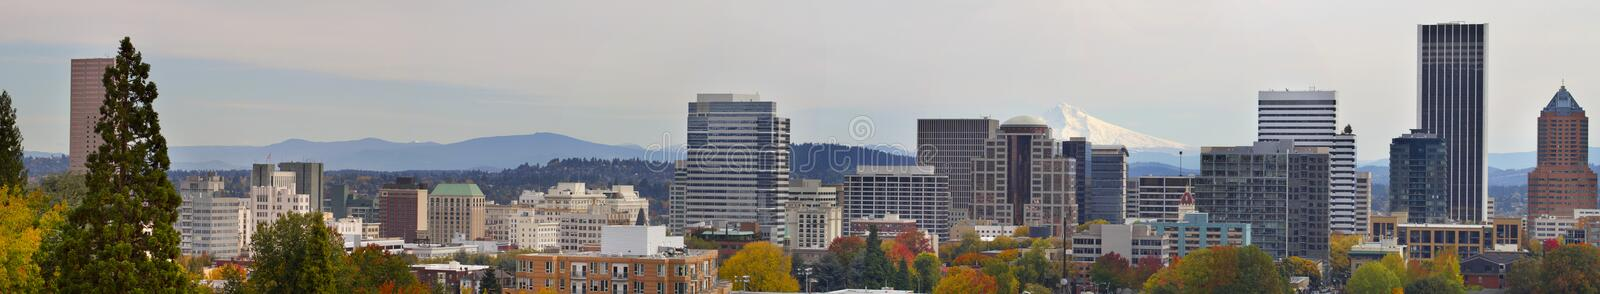 Portland Downtown Cityscape in the Fall Panorama 2 stock image